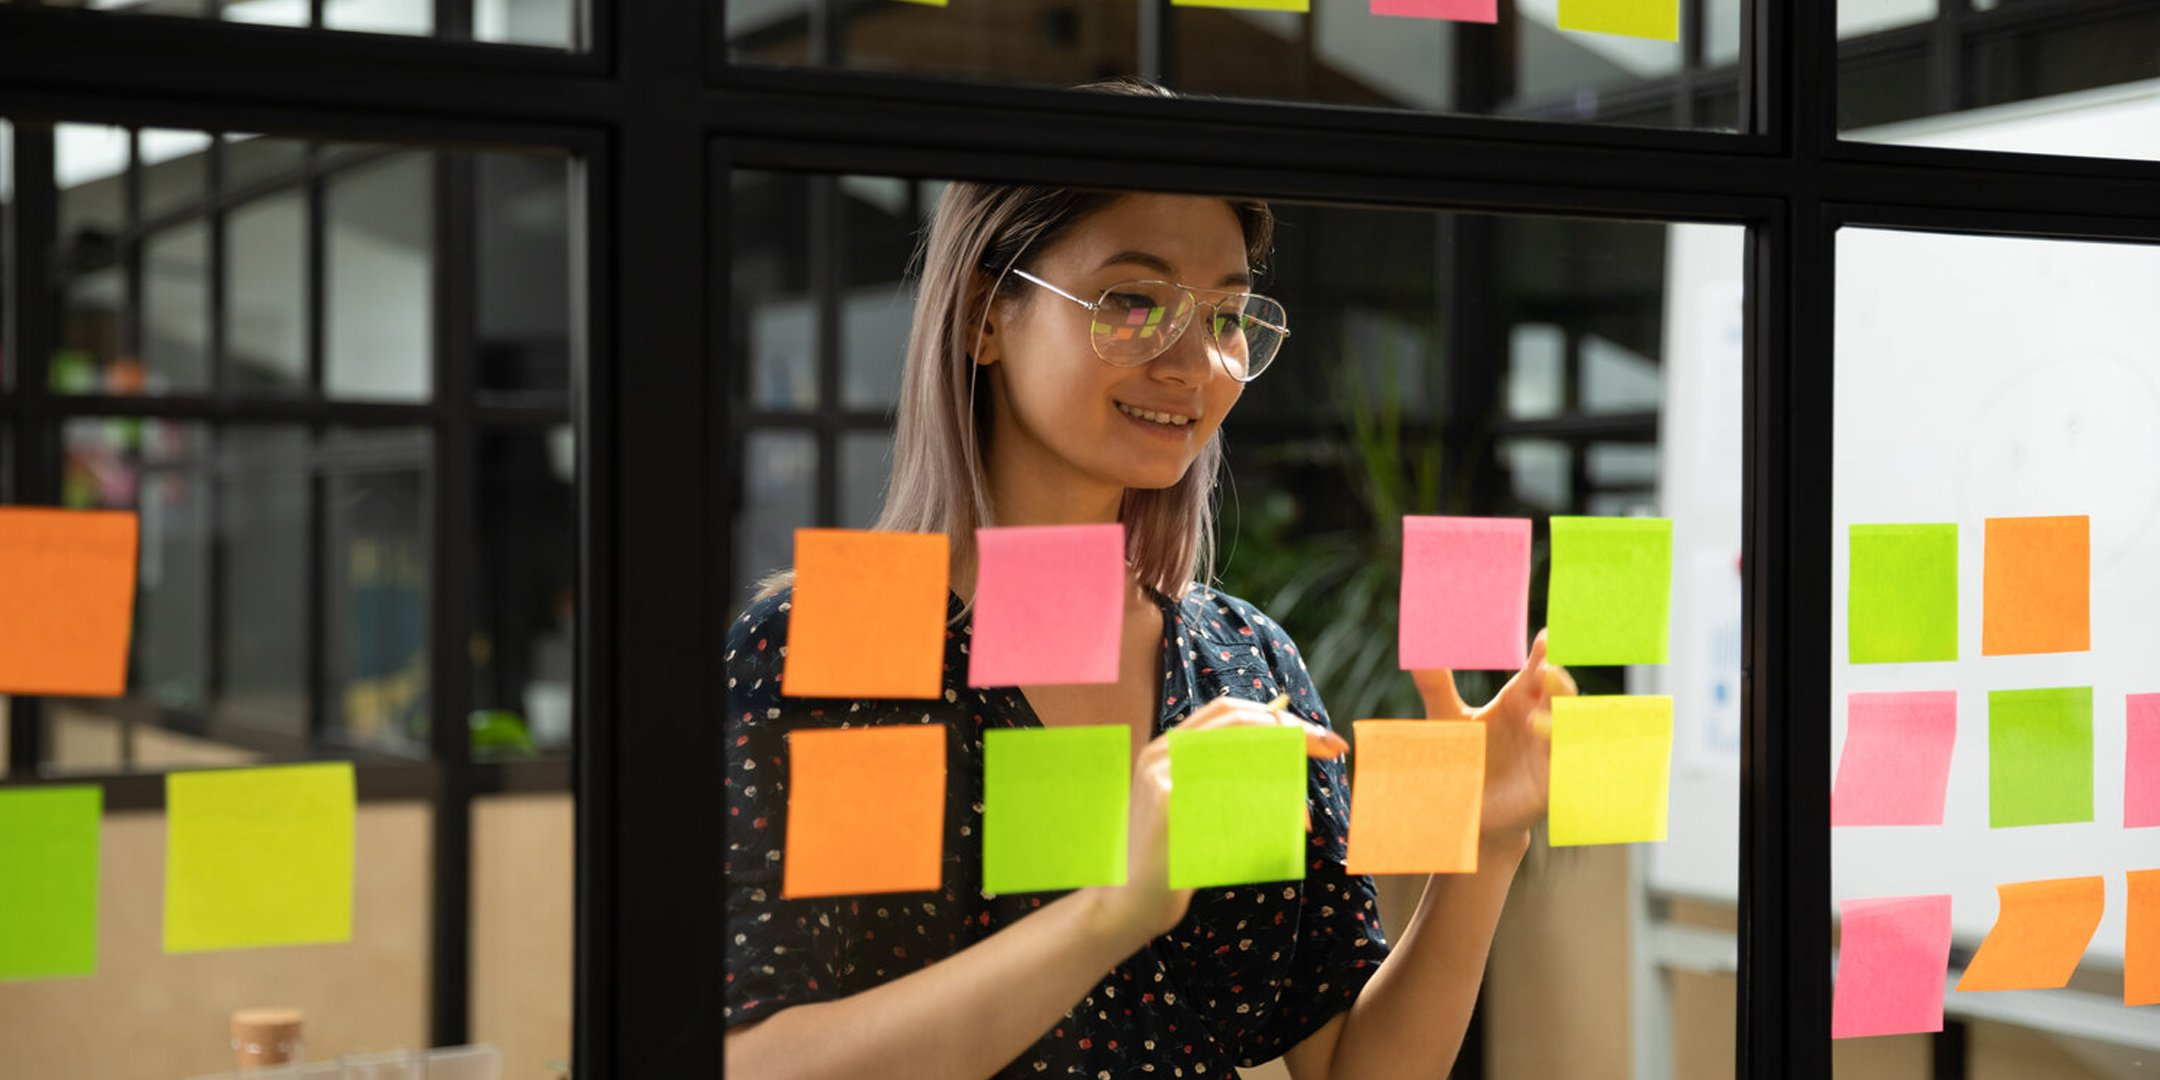 A lady creating a high-level plan on a glass window with sticky notes.